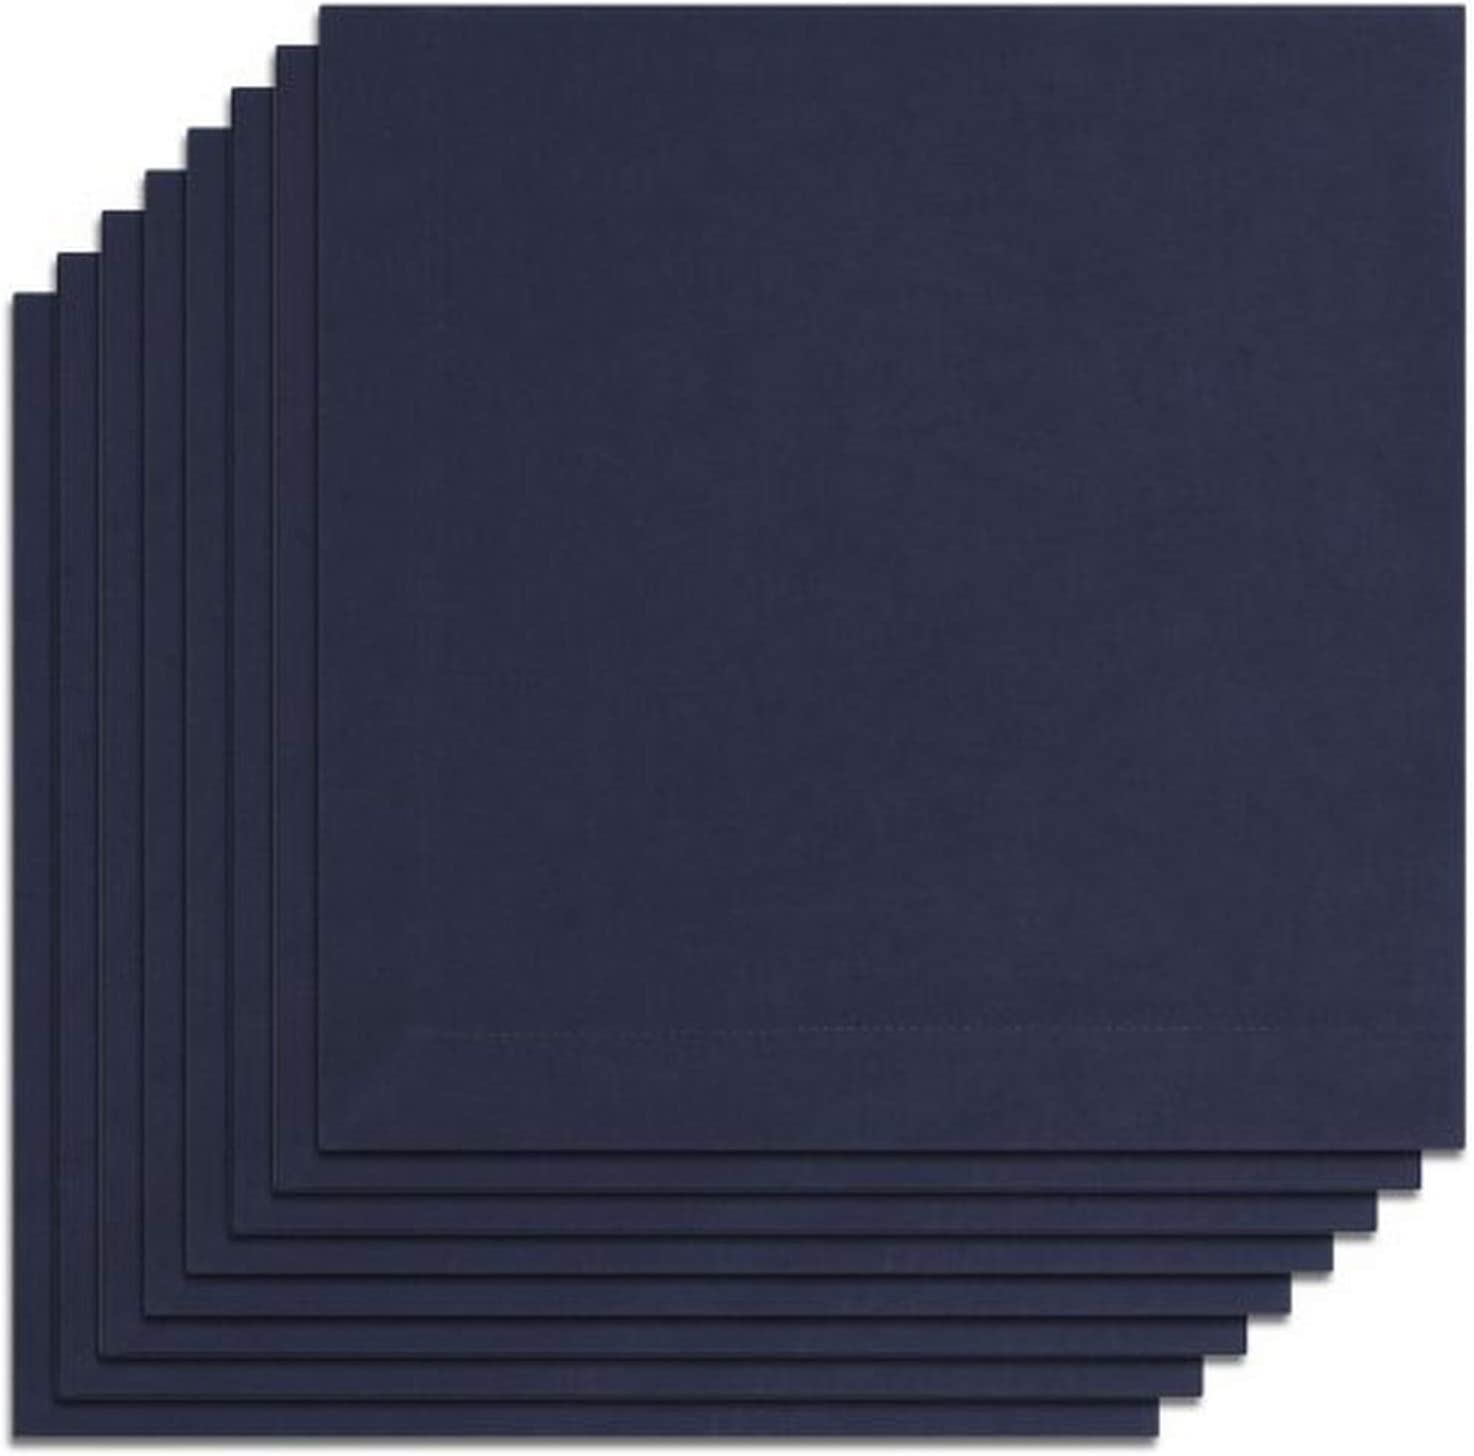 100/% Cotton Set of 8 KAF Home Buffet Napkins in Navy 19 by 19 Machine Washable